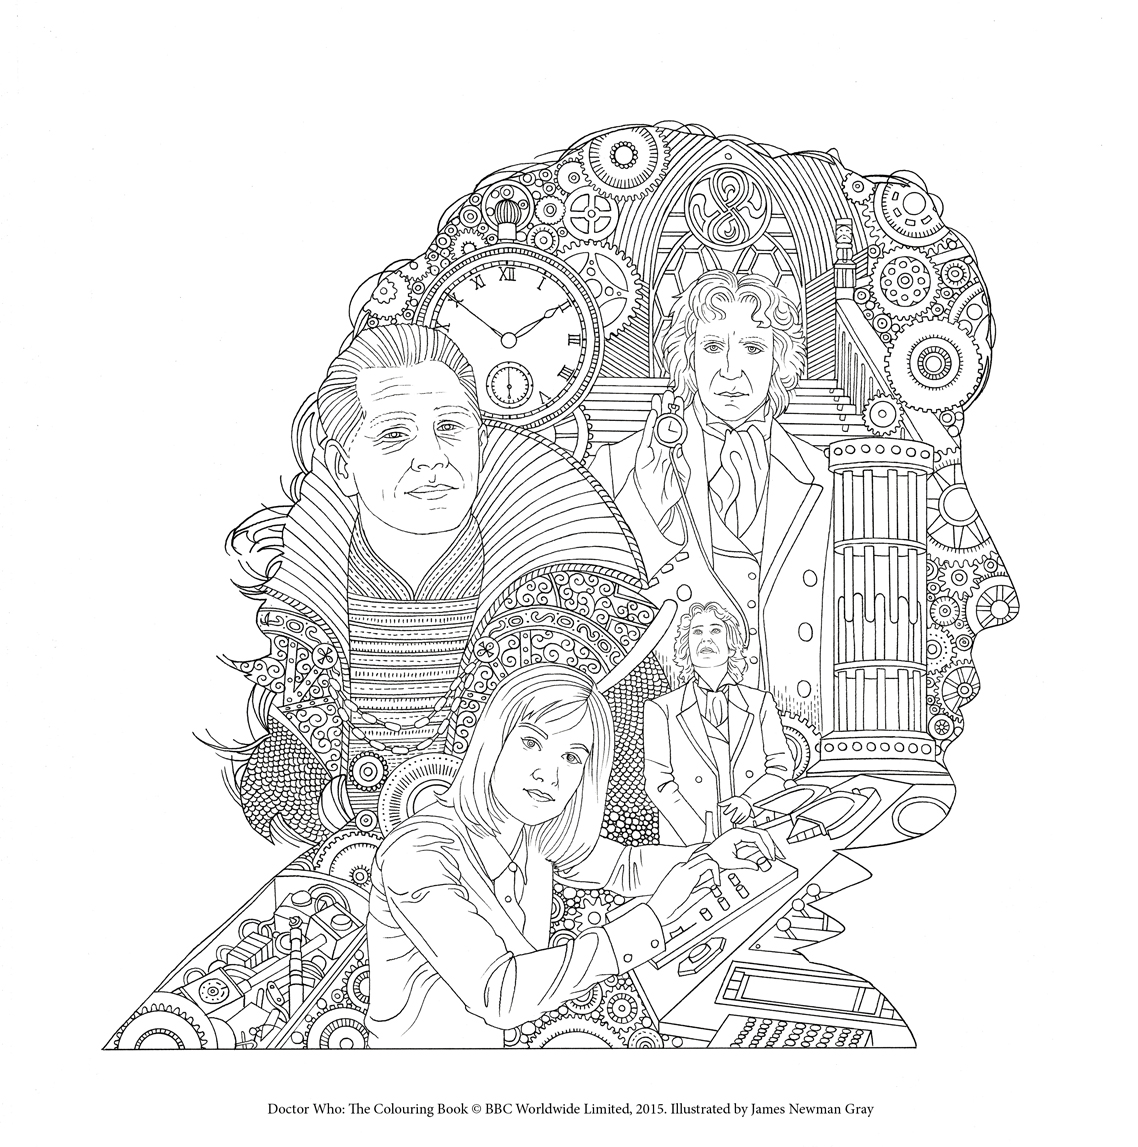 doctor who pictures to colour doctor who wibbly wobbly timey wimey coloring pages who to doctor pictures colour